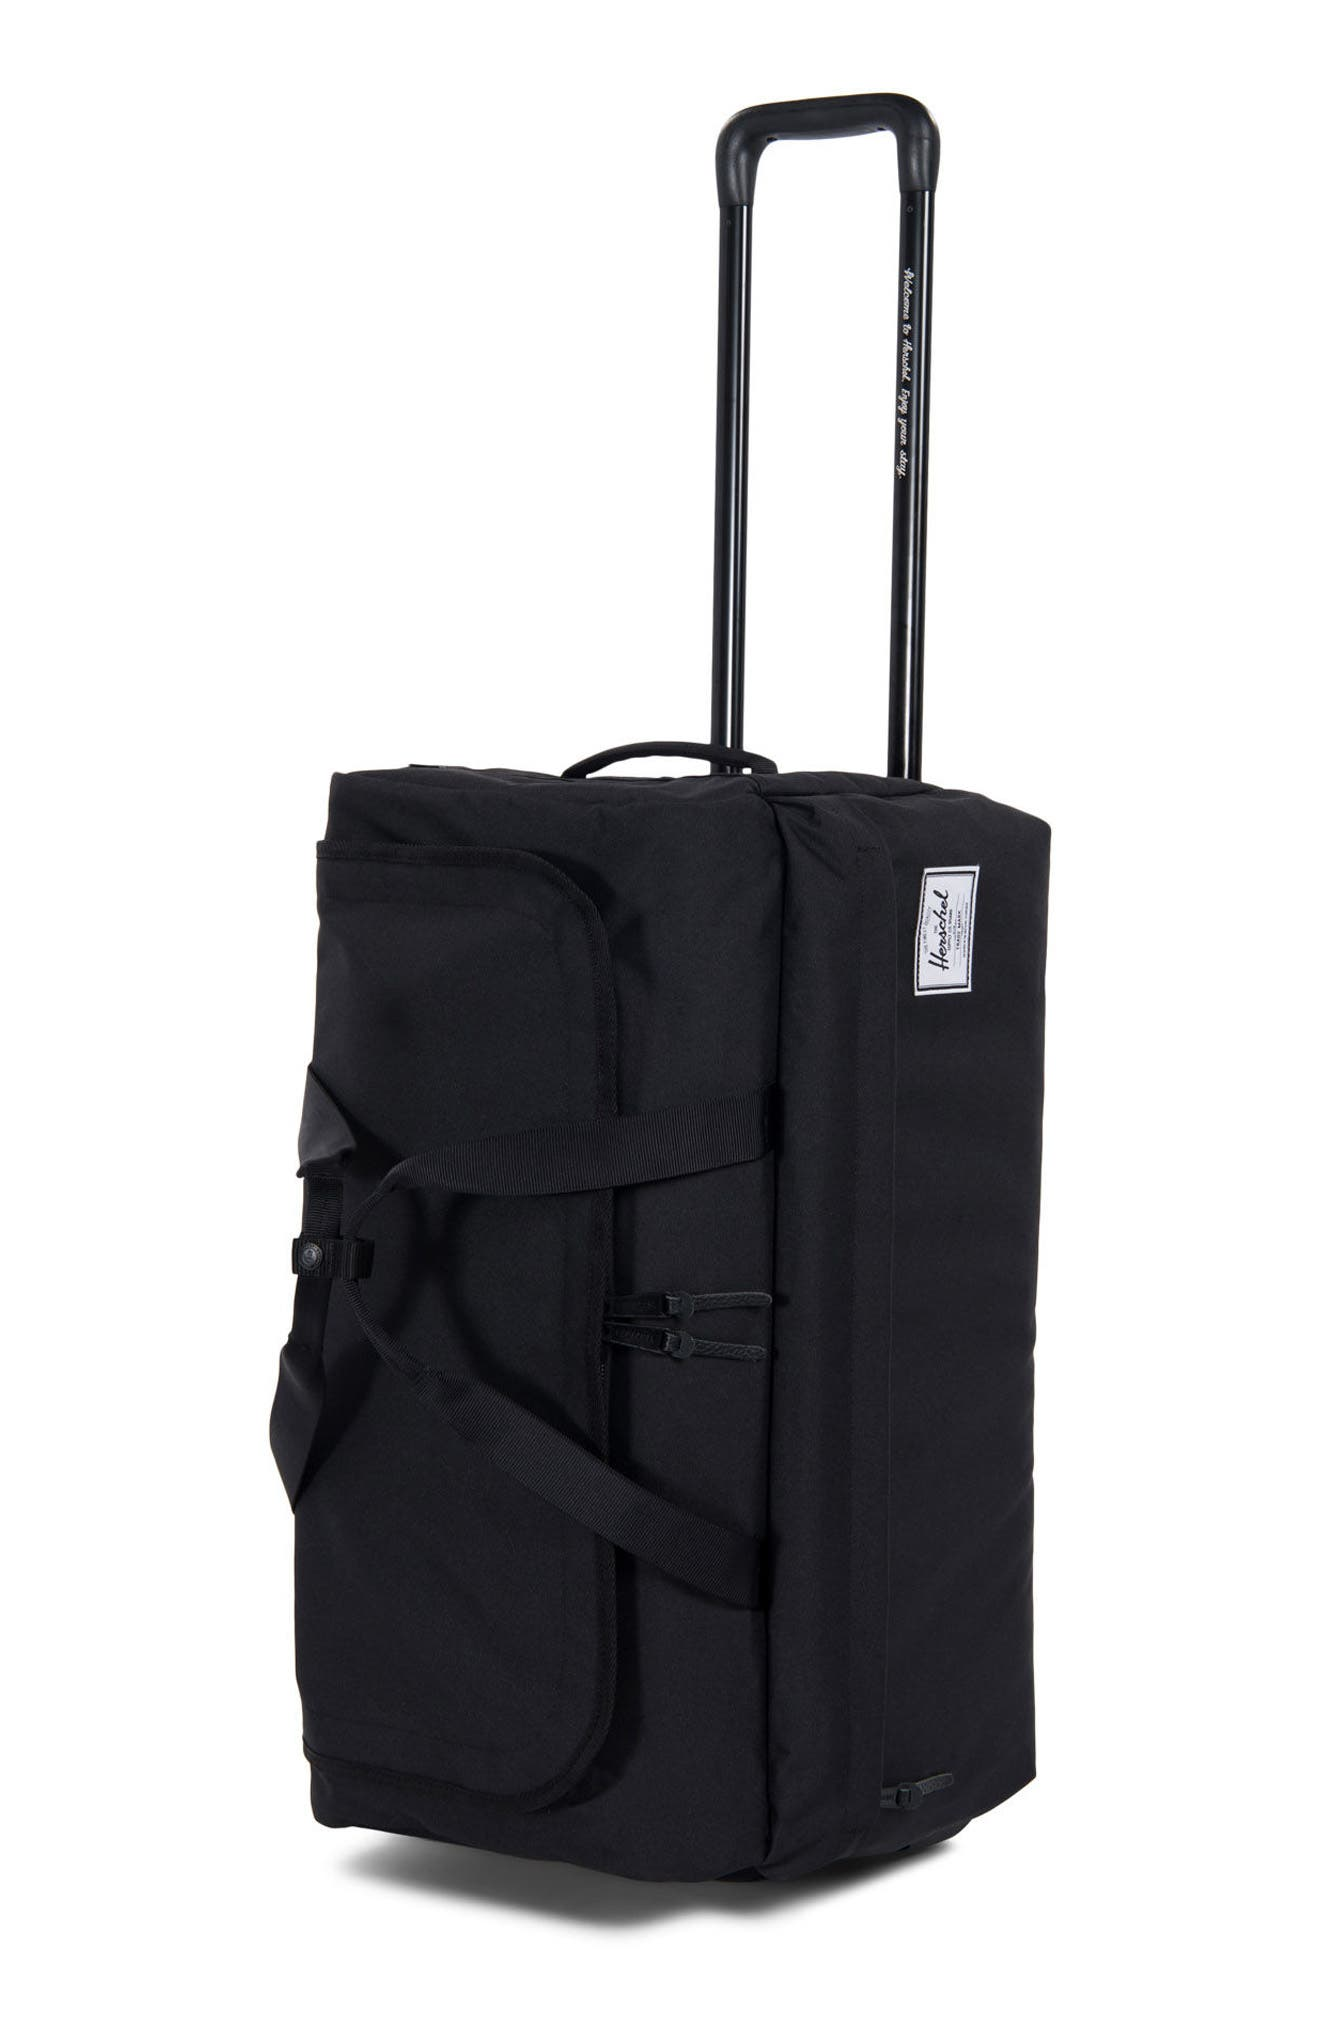 24-Inch Wheelie Rolling Carry-On,                         Main,                         color, 001